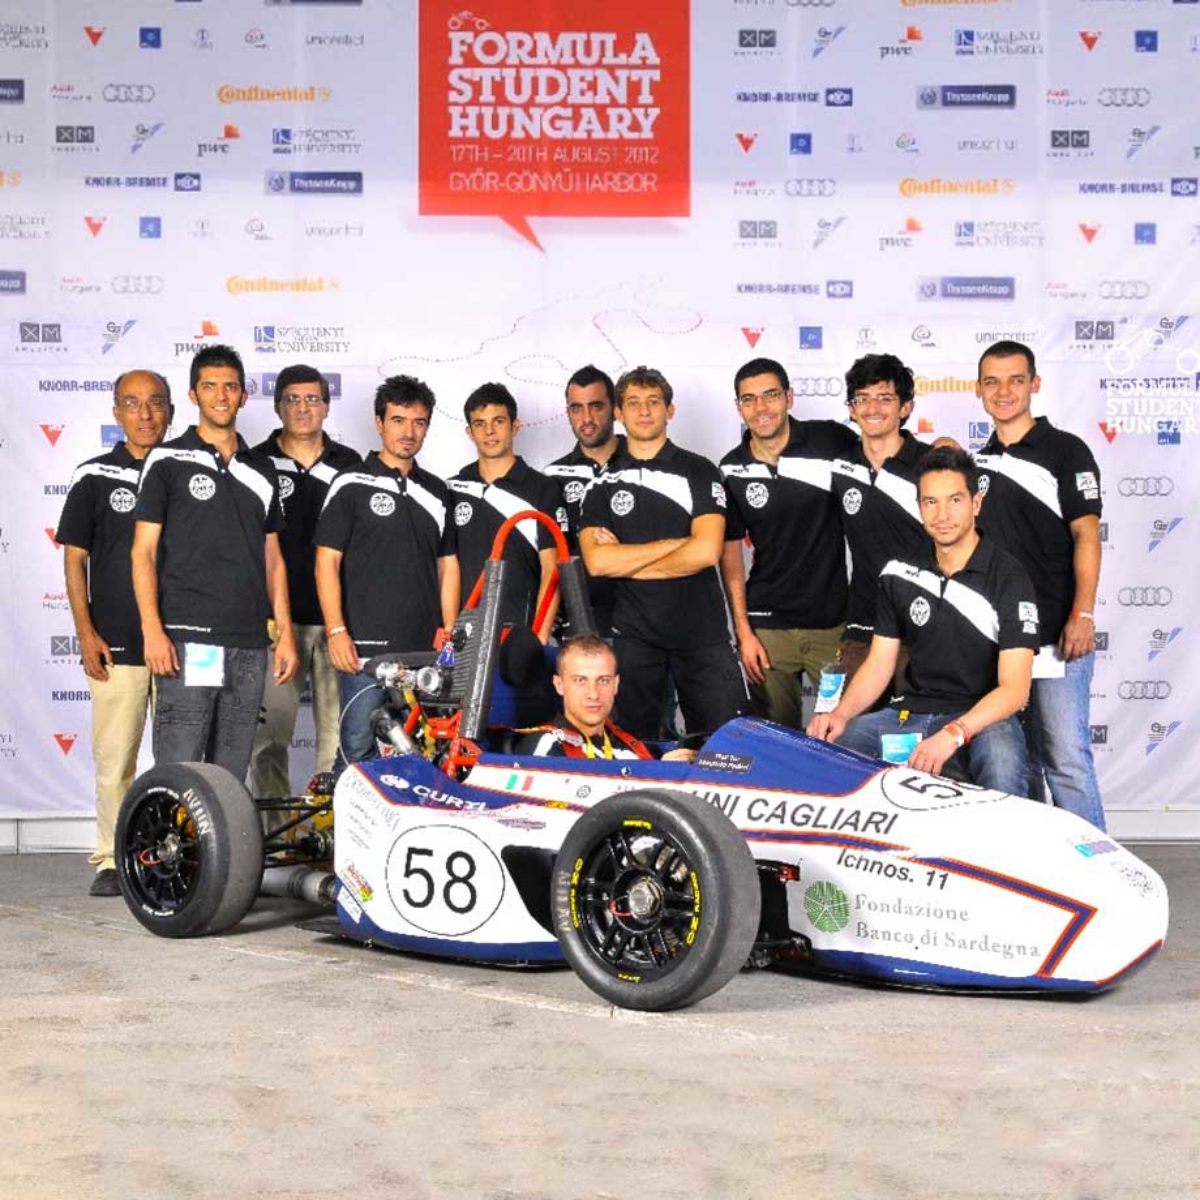 Unica Racing Team